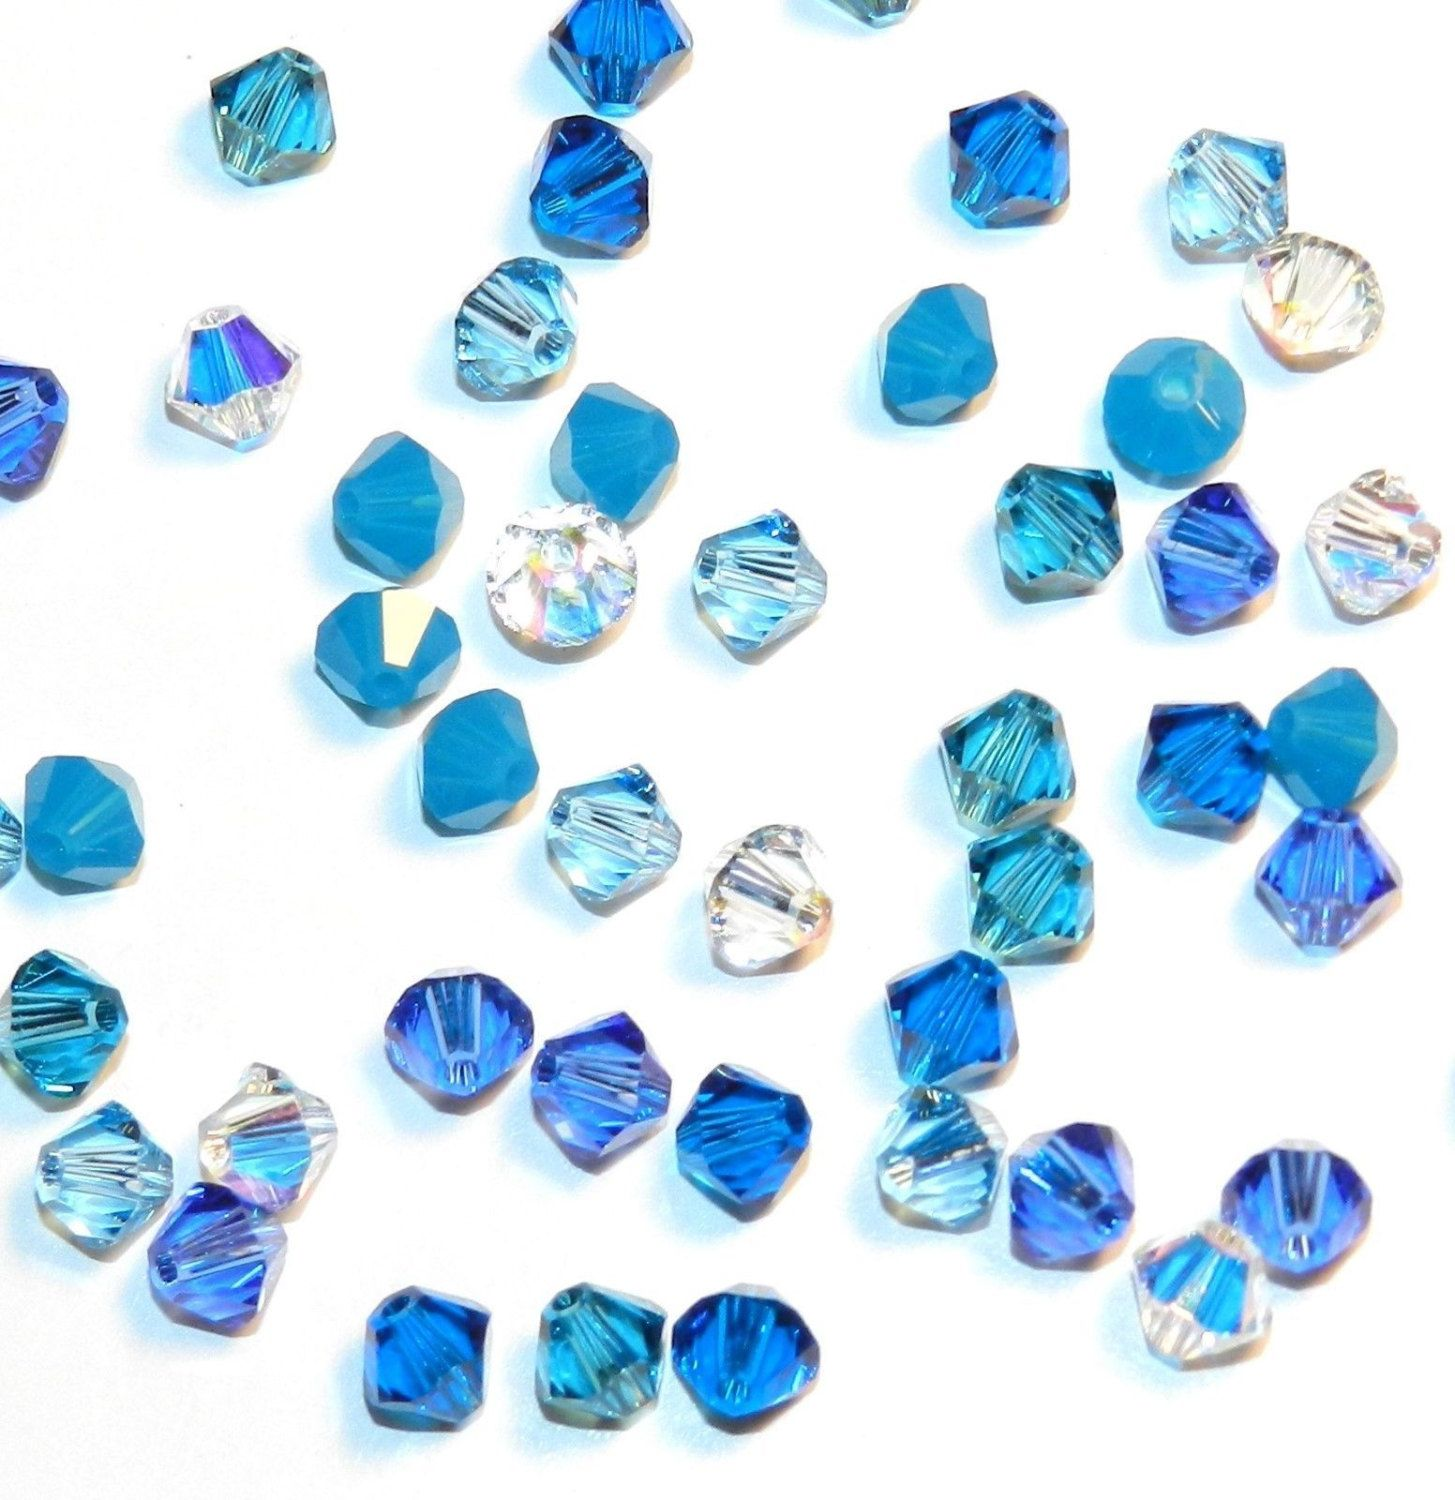 144 Swarovski 5328 XILION Crystal Bicone Beads 1 gross 4mm Assorted Mix Colors